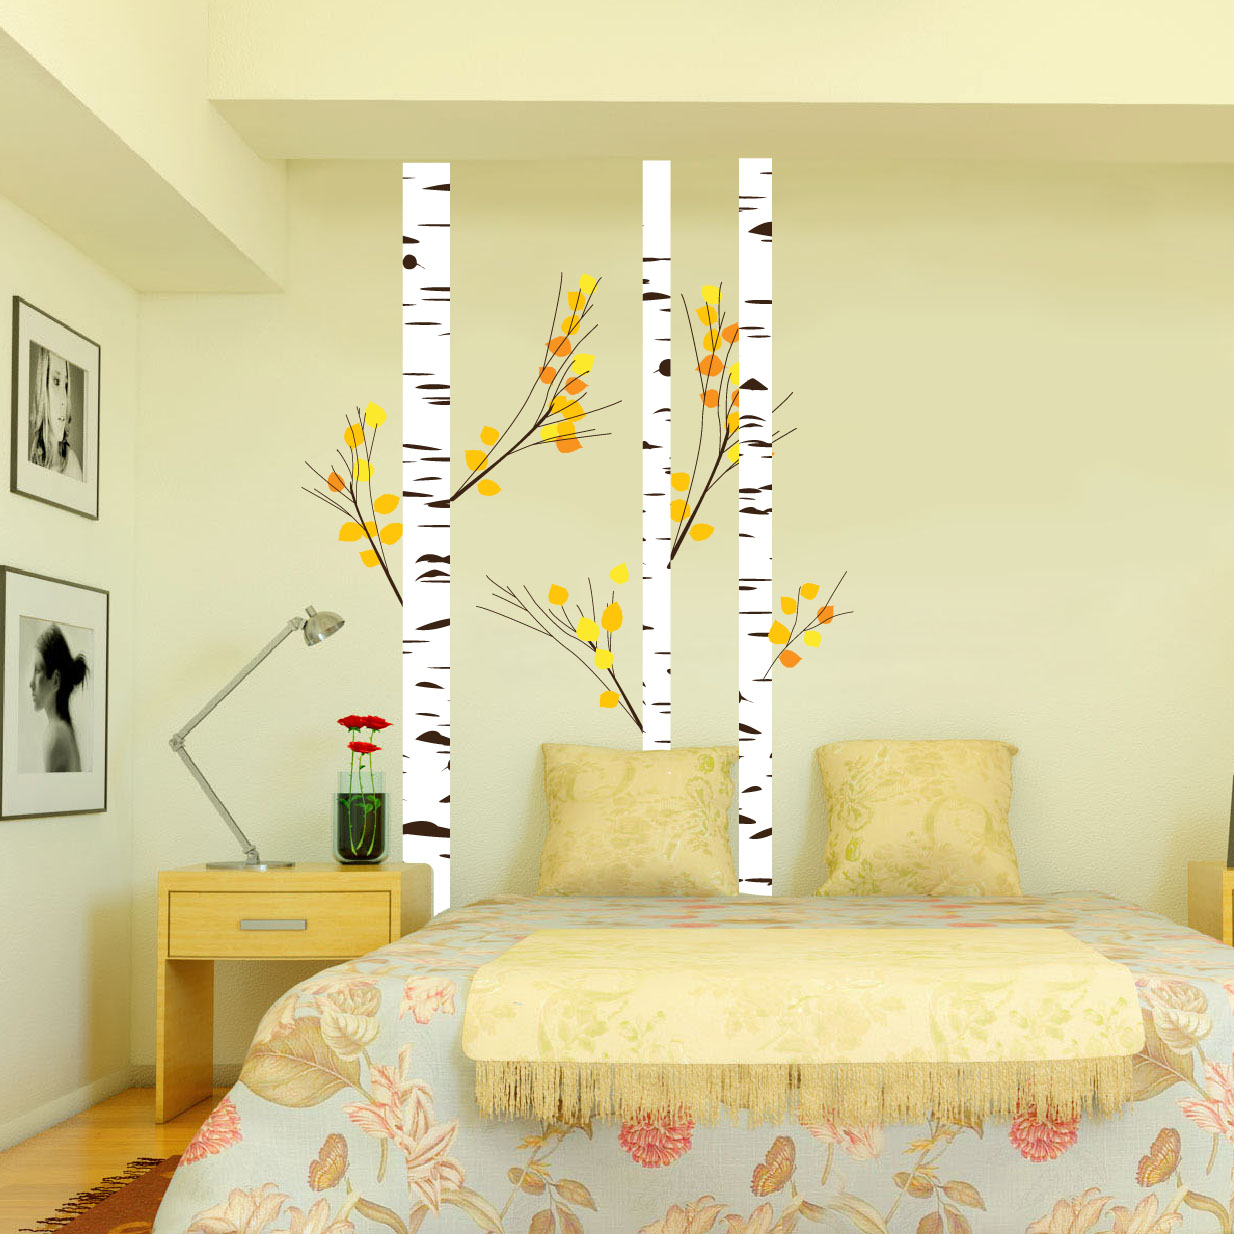 Birch Tree Forest Set Vinyl Wall Decal Realistic Leaves - Yellow wall decals